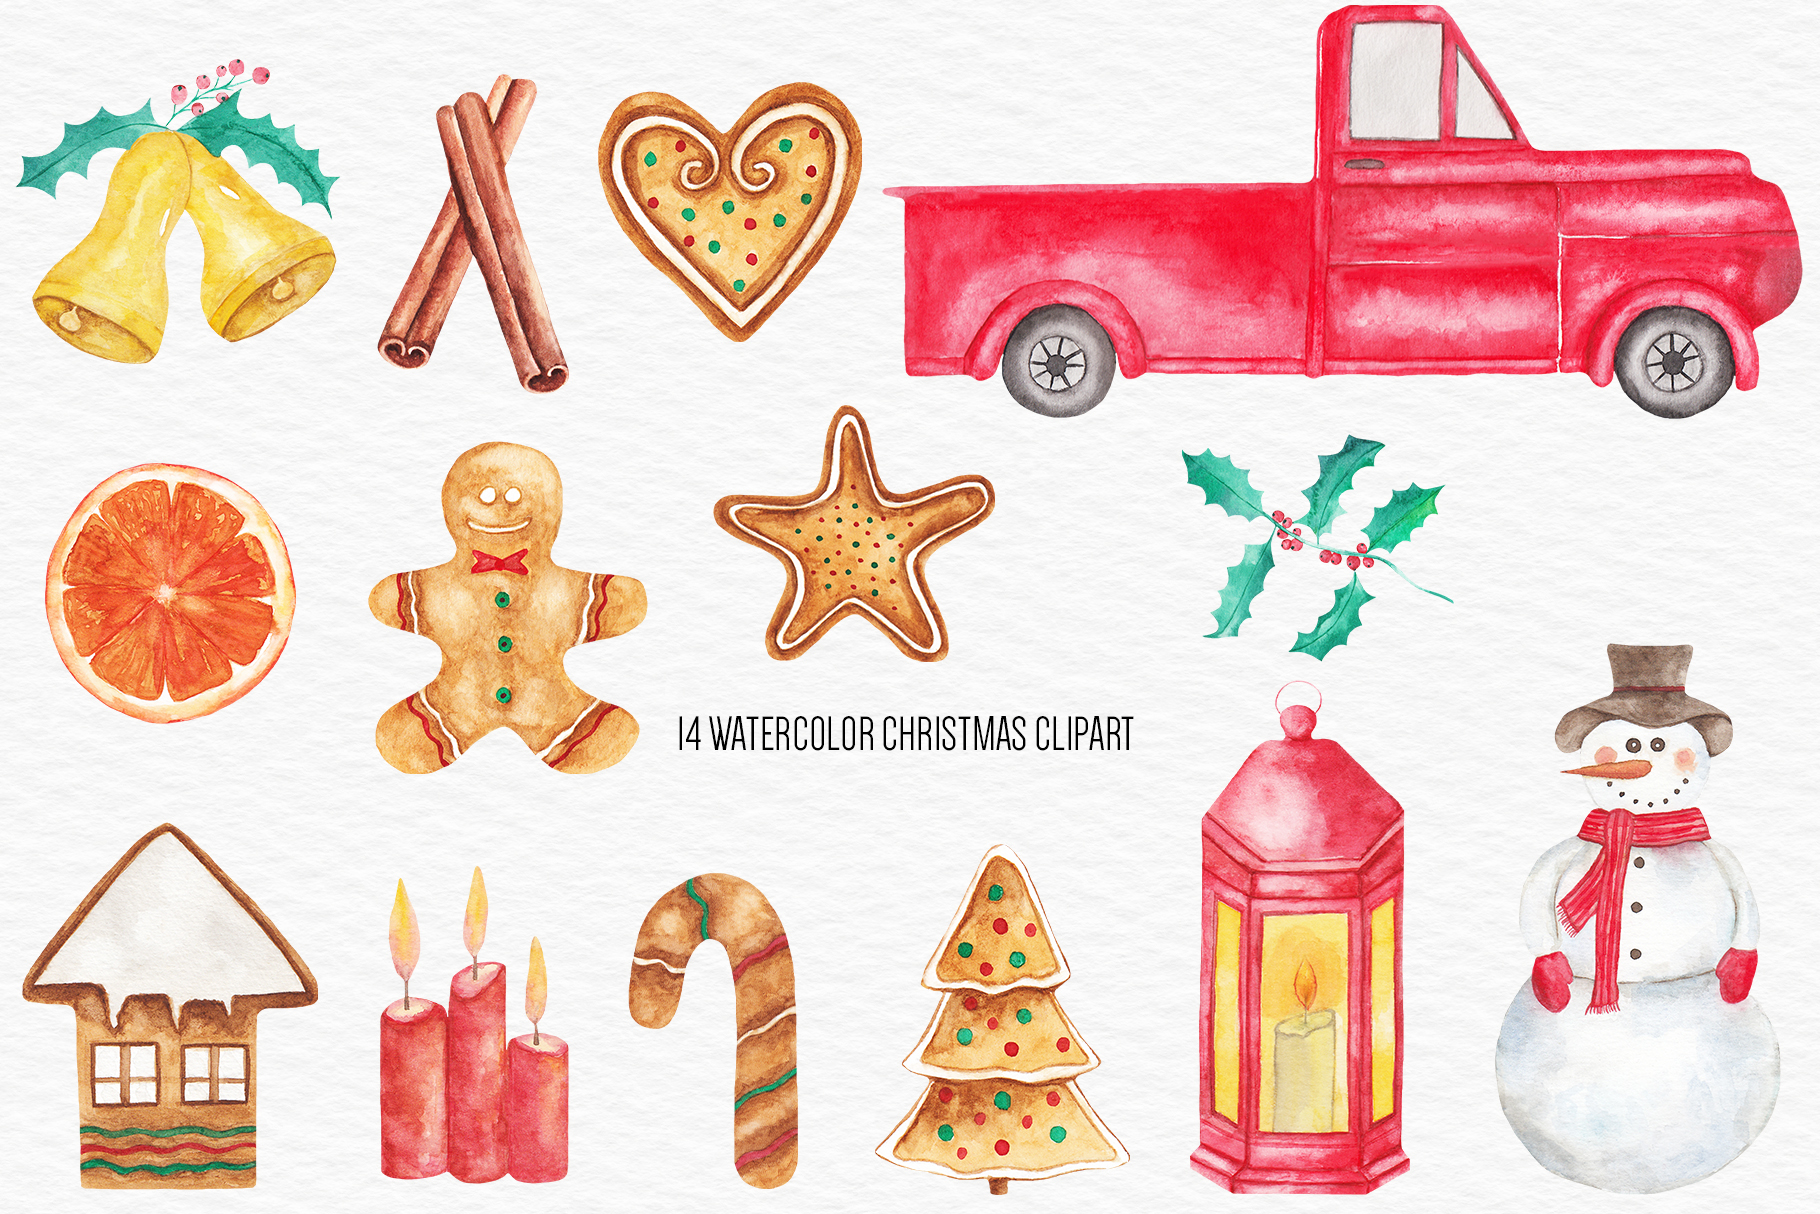 Watercolor Christmas Clipart, Christmas Illustration example image 2